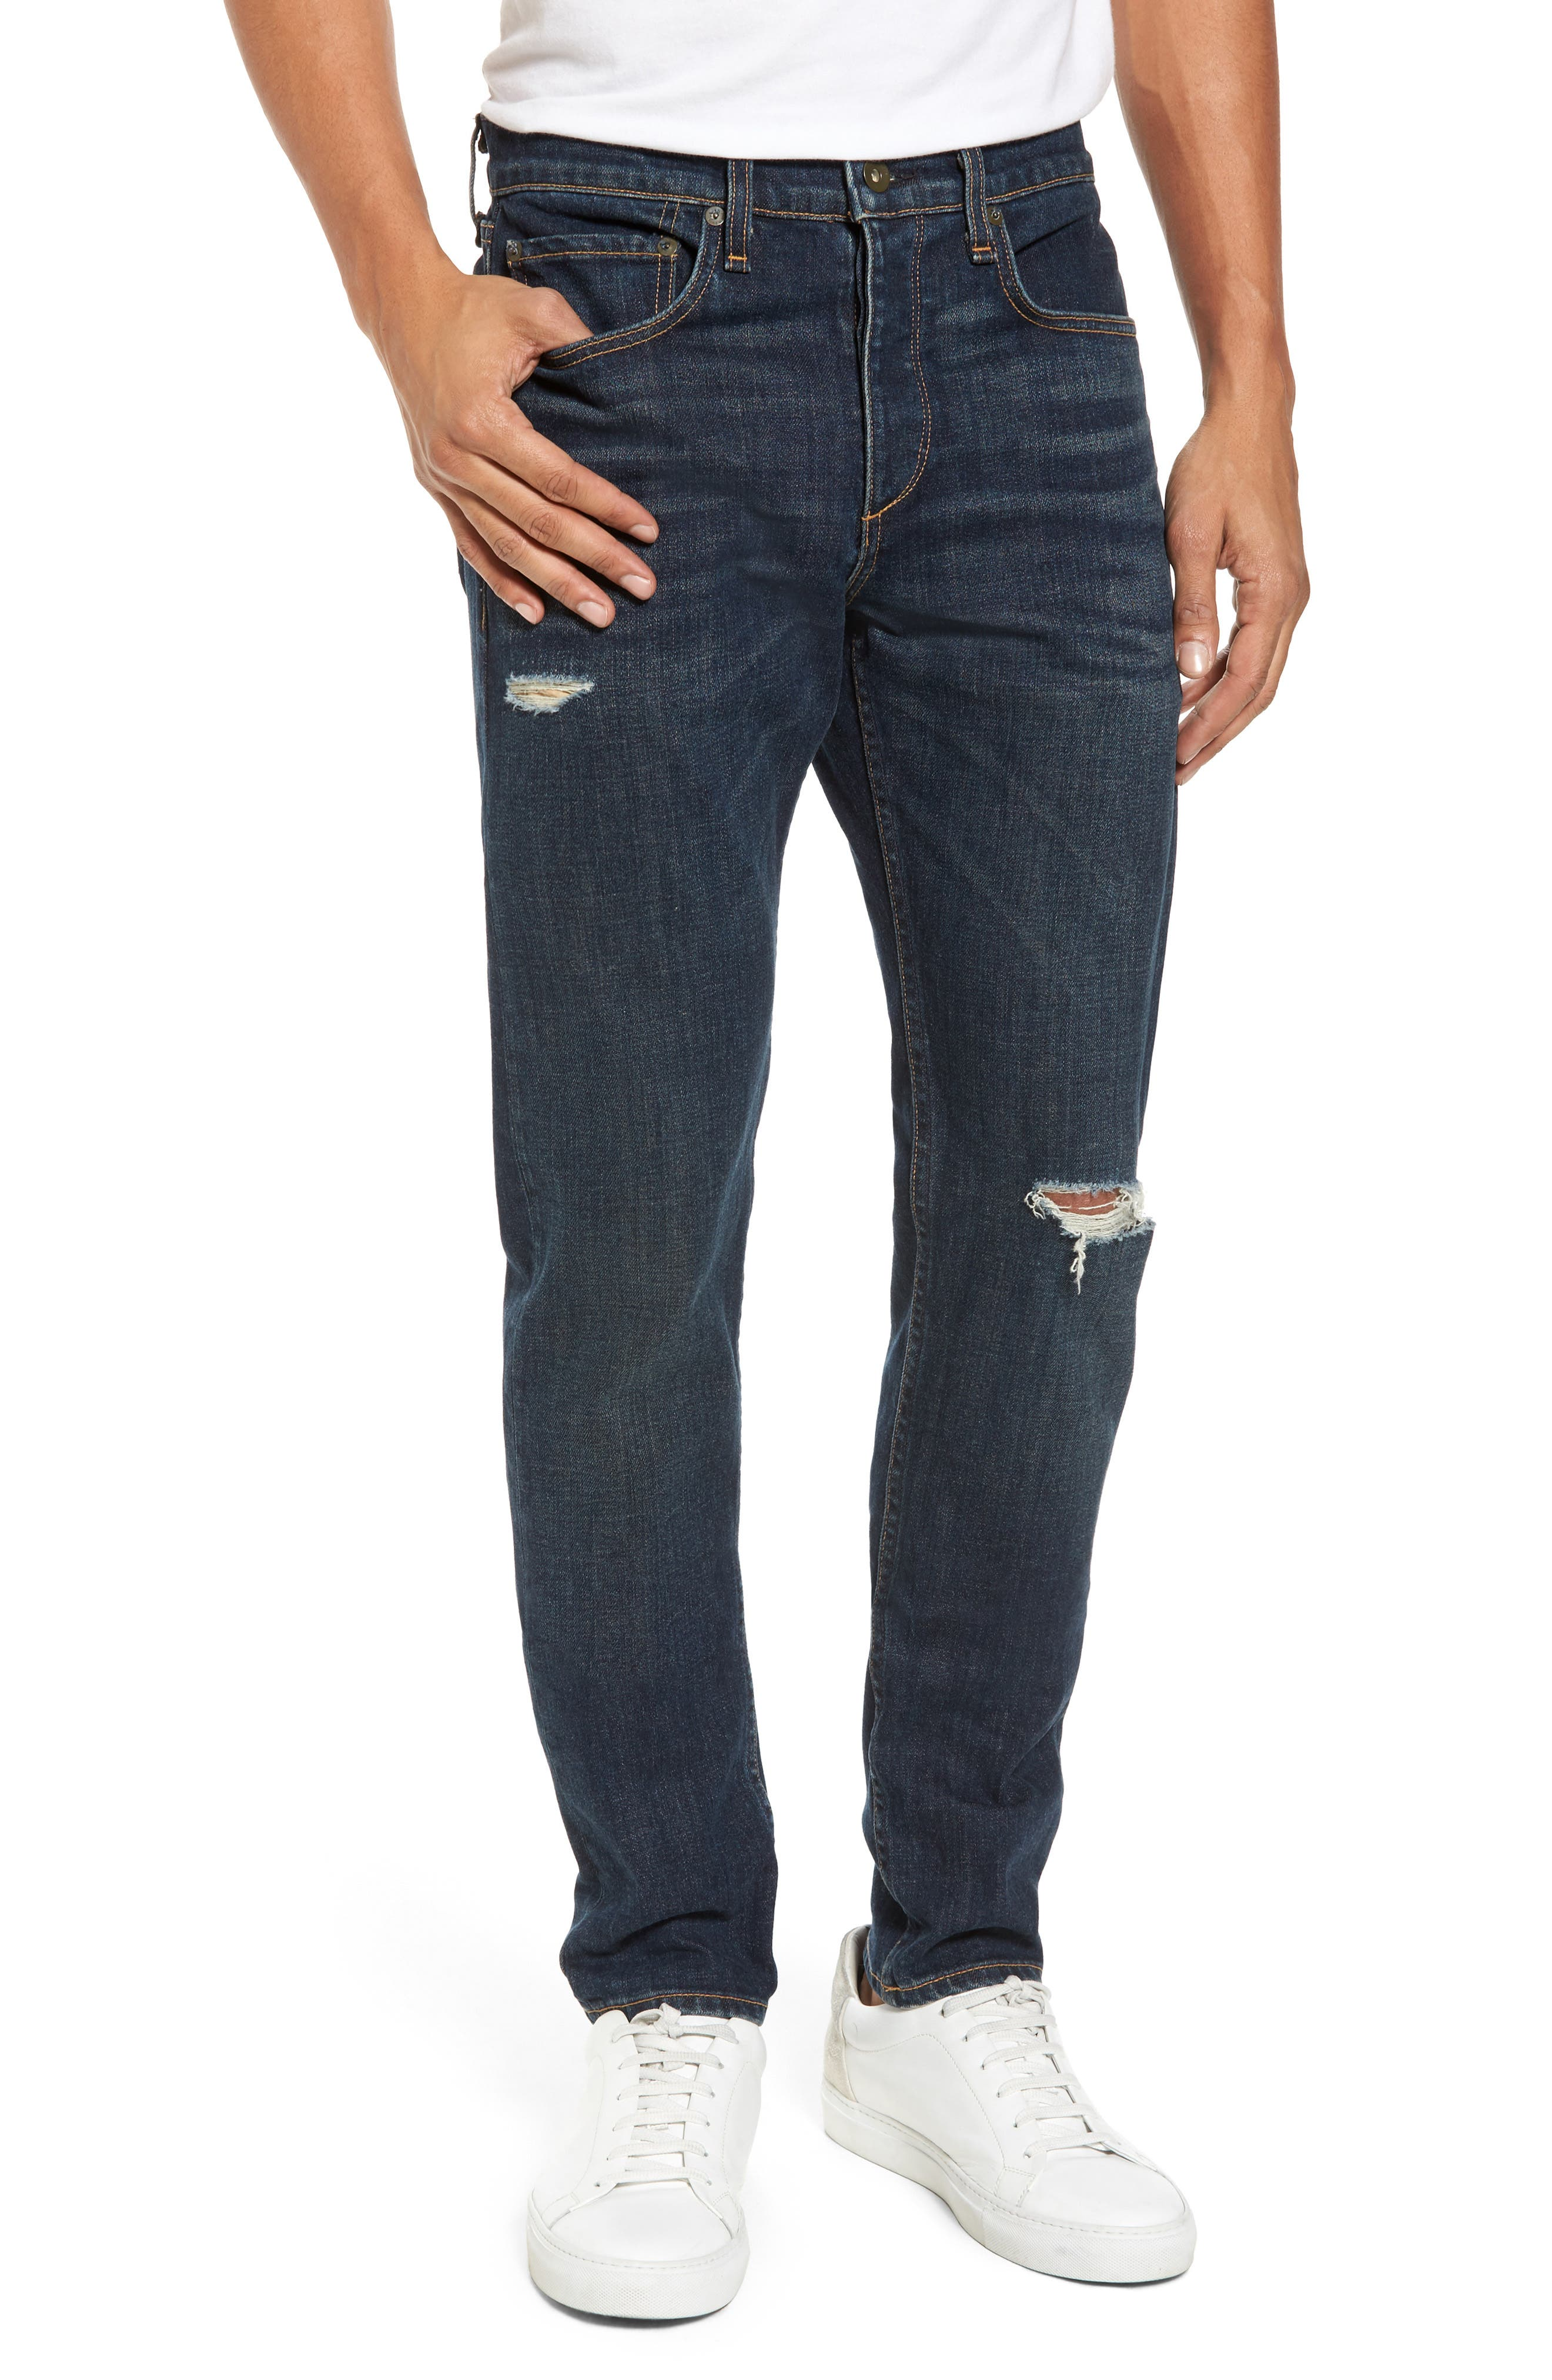 Fit 1 Skinny Fit Jeans,                         Main,                         color, Platt With Holes